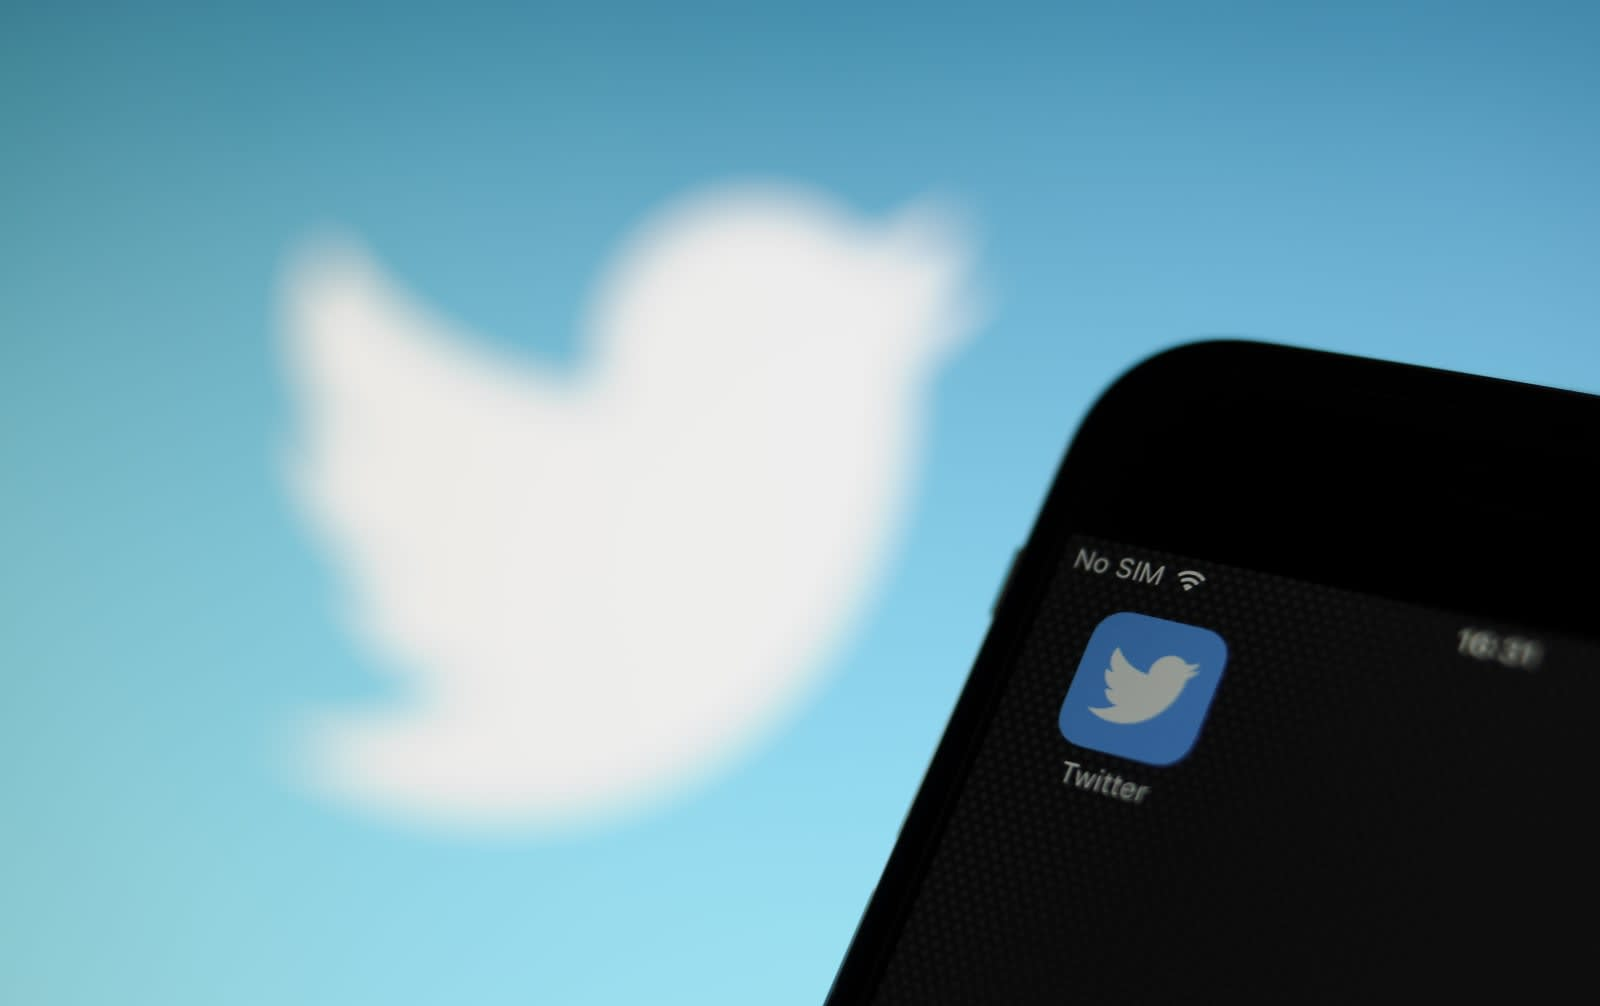 Twitter security flaw uses text spoofing to hijack UK accounts